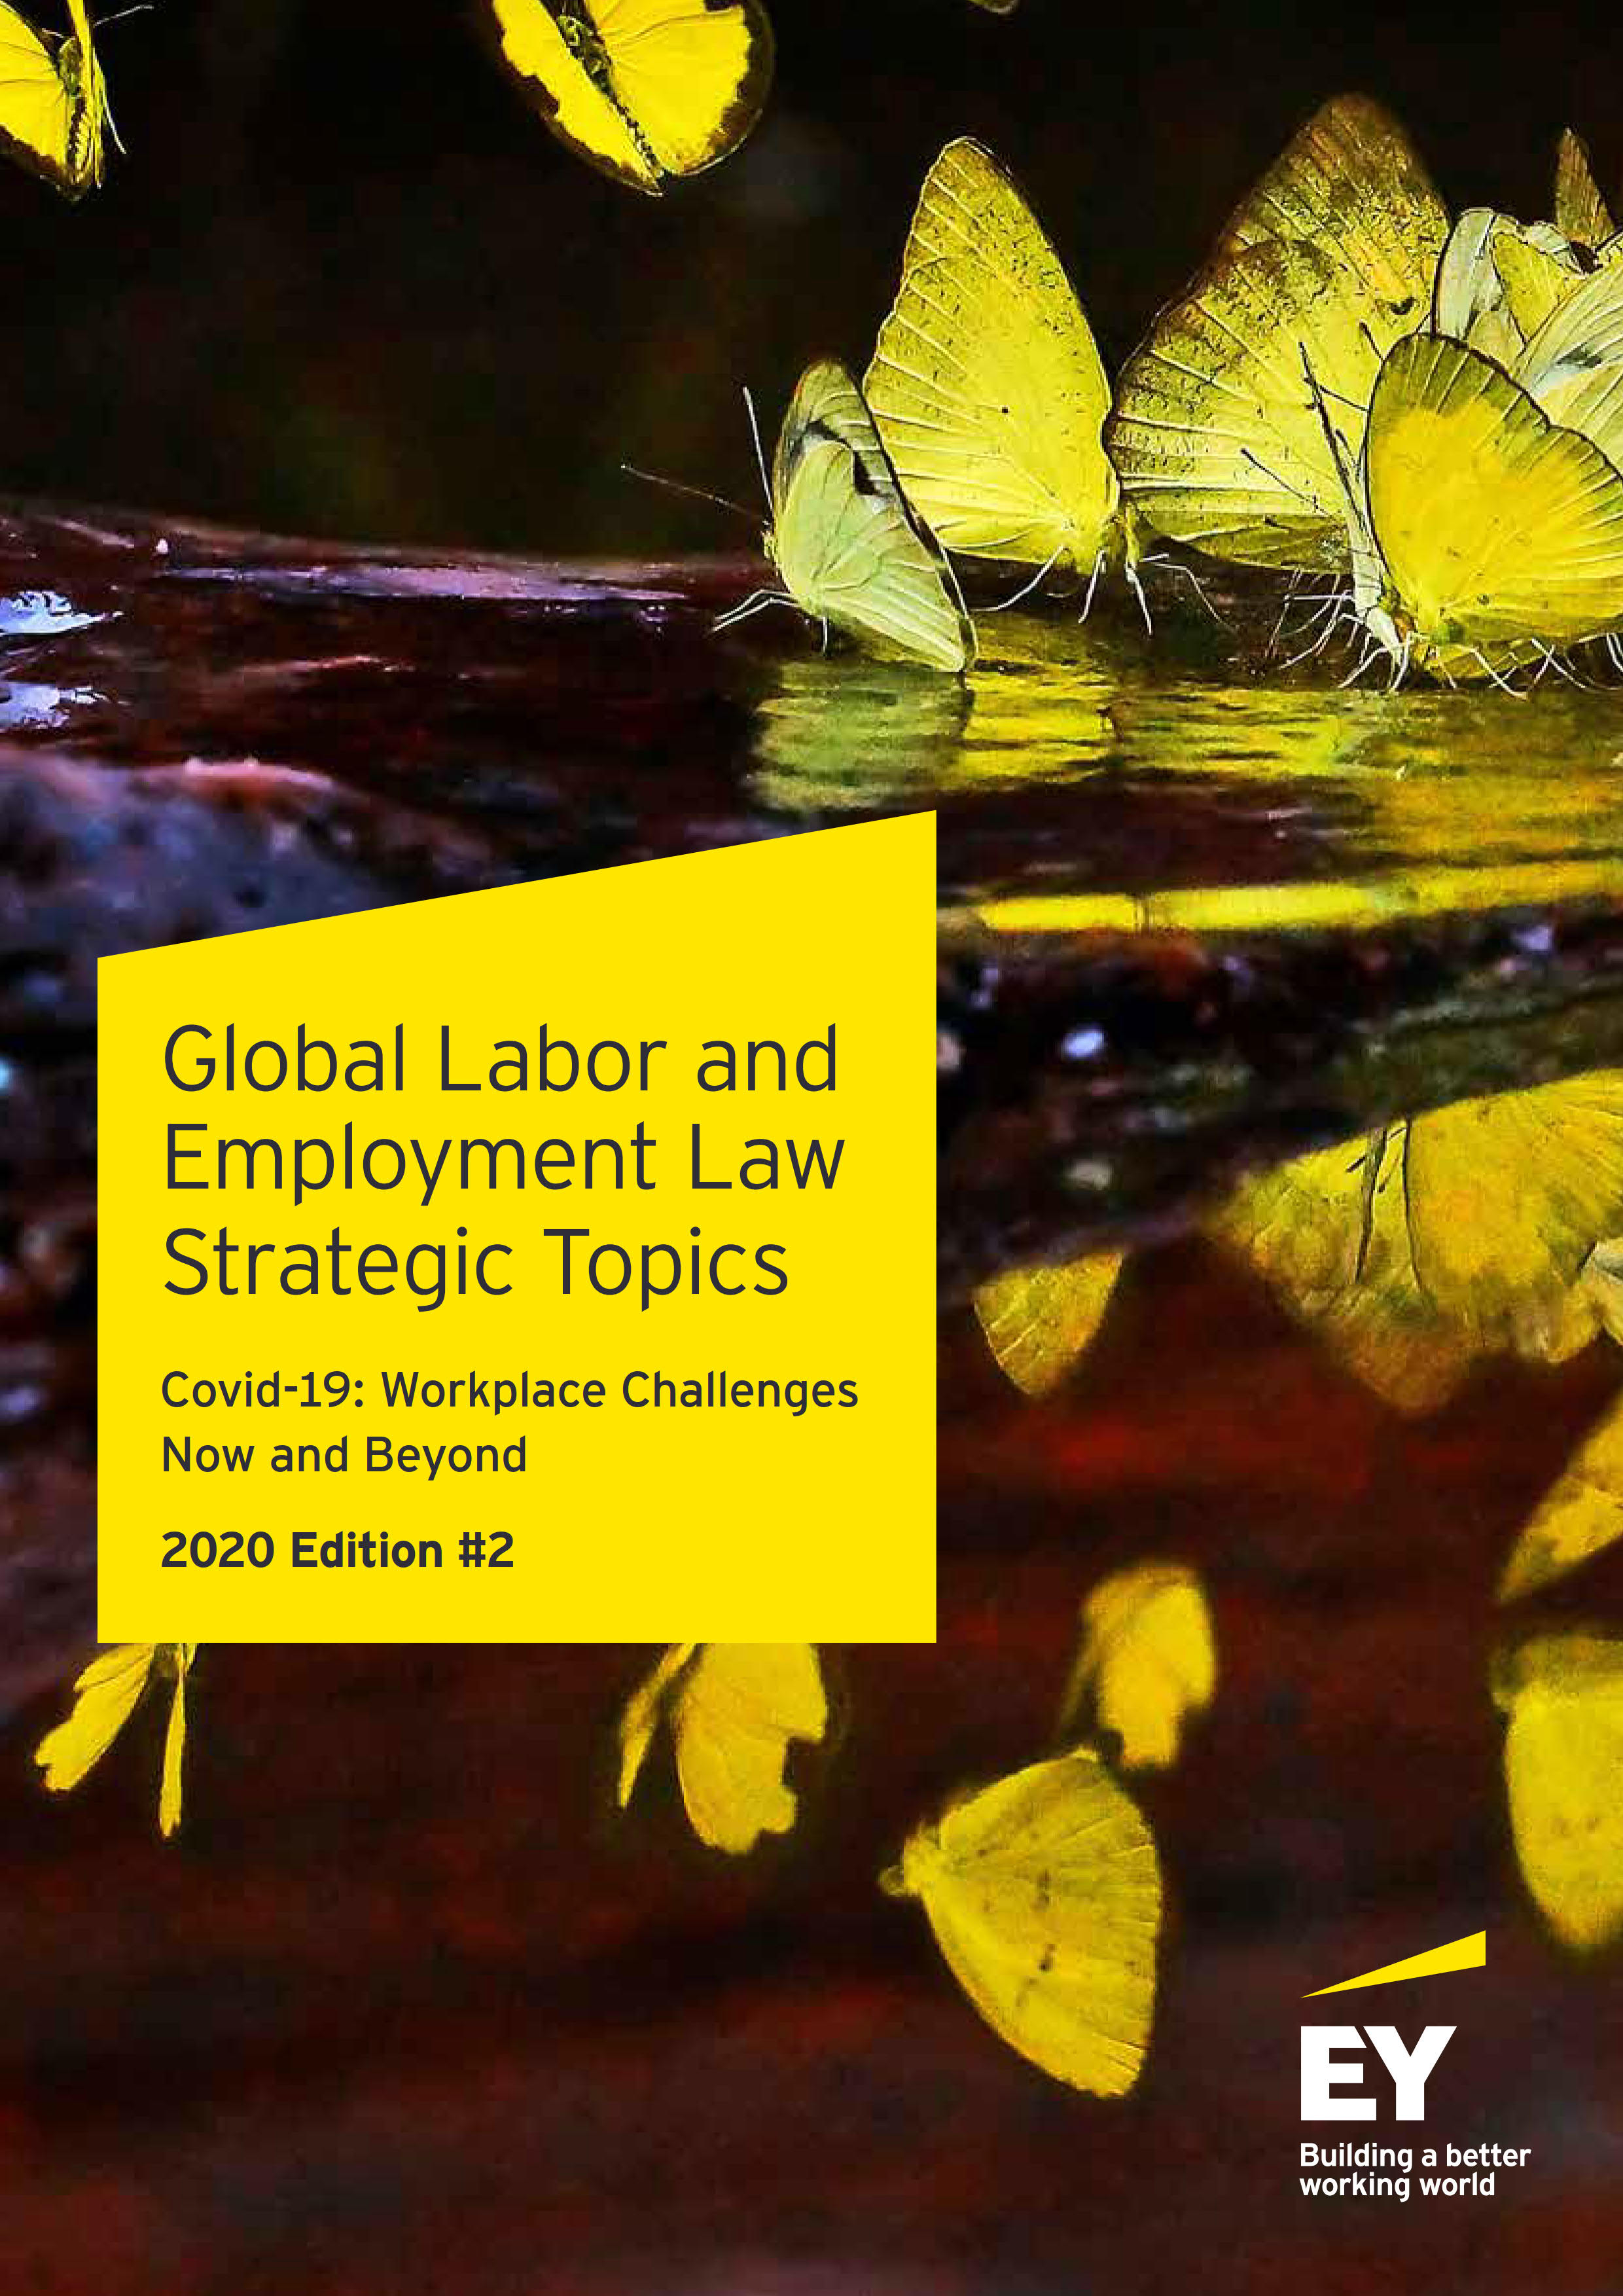 Global Labor and Employment Law Strategic Topics Covid-19: Workplace Challenges Now and Beyond 2020 Edition #2